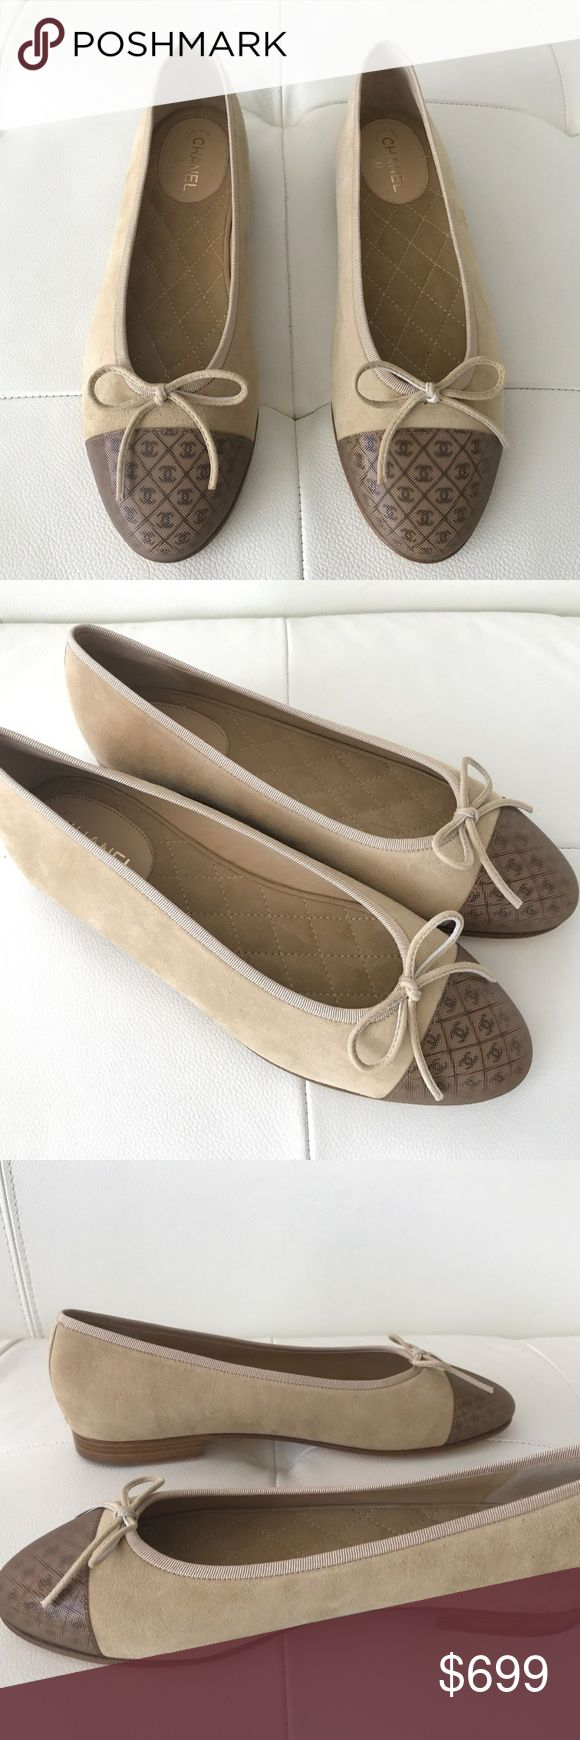 2017 CHANEL Classic Beige Suede Ballet Flats 2017 Chanel Classic Beige Suede Ballet Flats with 3D CC Hologram Brown Cap toe  100% AUTHENTIC CHANEL BRAND NEW!!!  NEVER USED!  NEVER WORN! IN BOX WITH BOTH DUSTBAGS!  Color: tan/nude/Beige/brown Size: 38 1/2 (38.5) (8.5 / 8 1/2) True to size 8.5.  Super cute!! Released in 2017.  No longer available in stores.  Retail Price: $800 plus tax  I LOVE THESE SHOES.  THEY ARE GREAT LOOKING AND STAND OUT SUBTLY. Purchased from high-end department store…